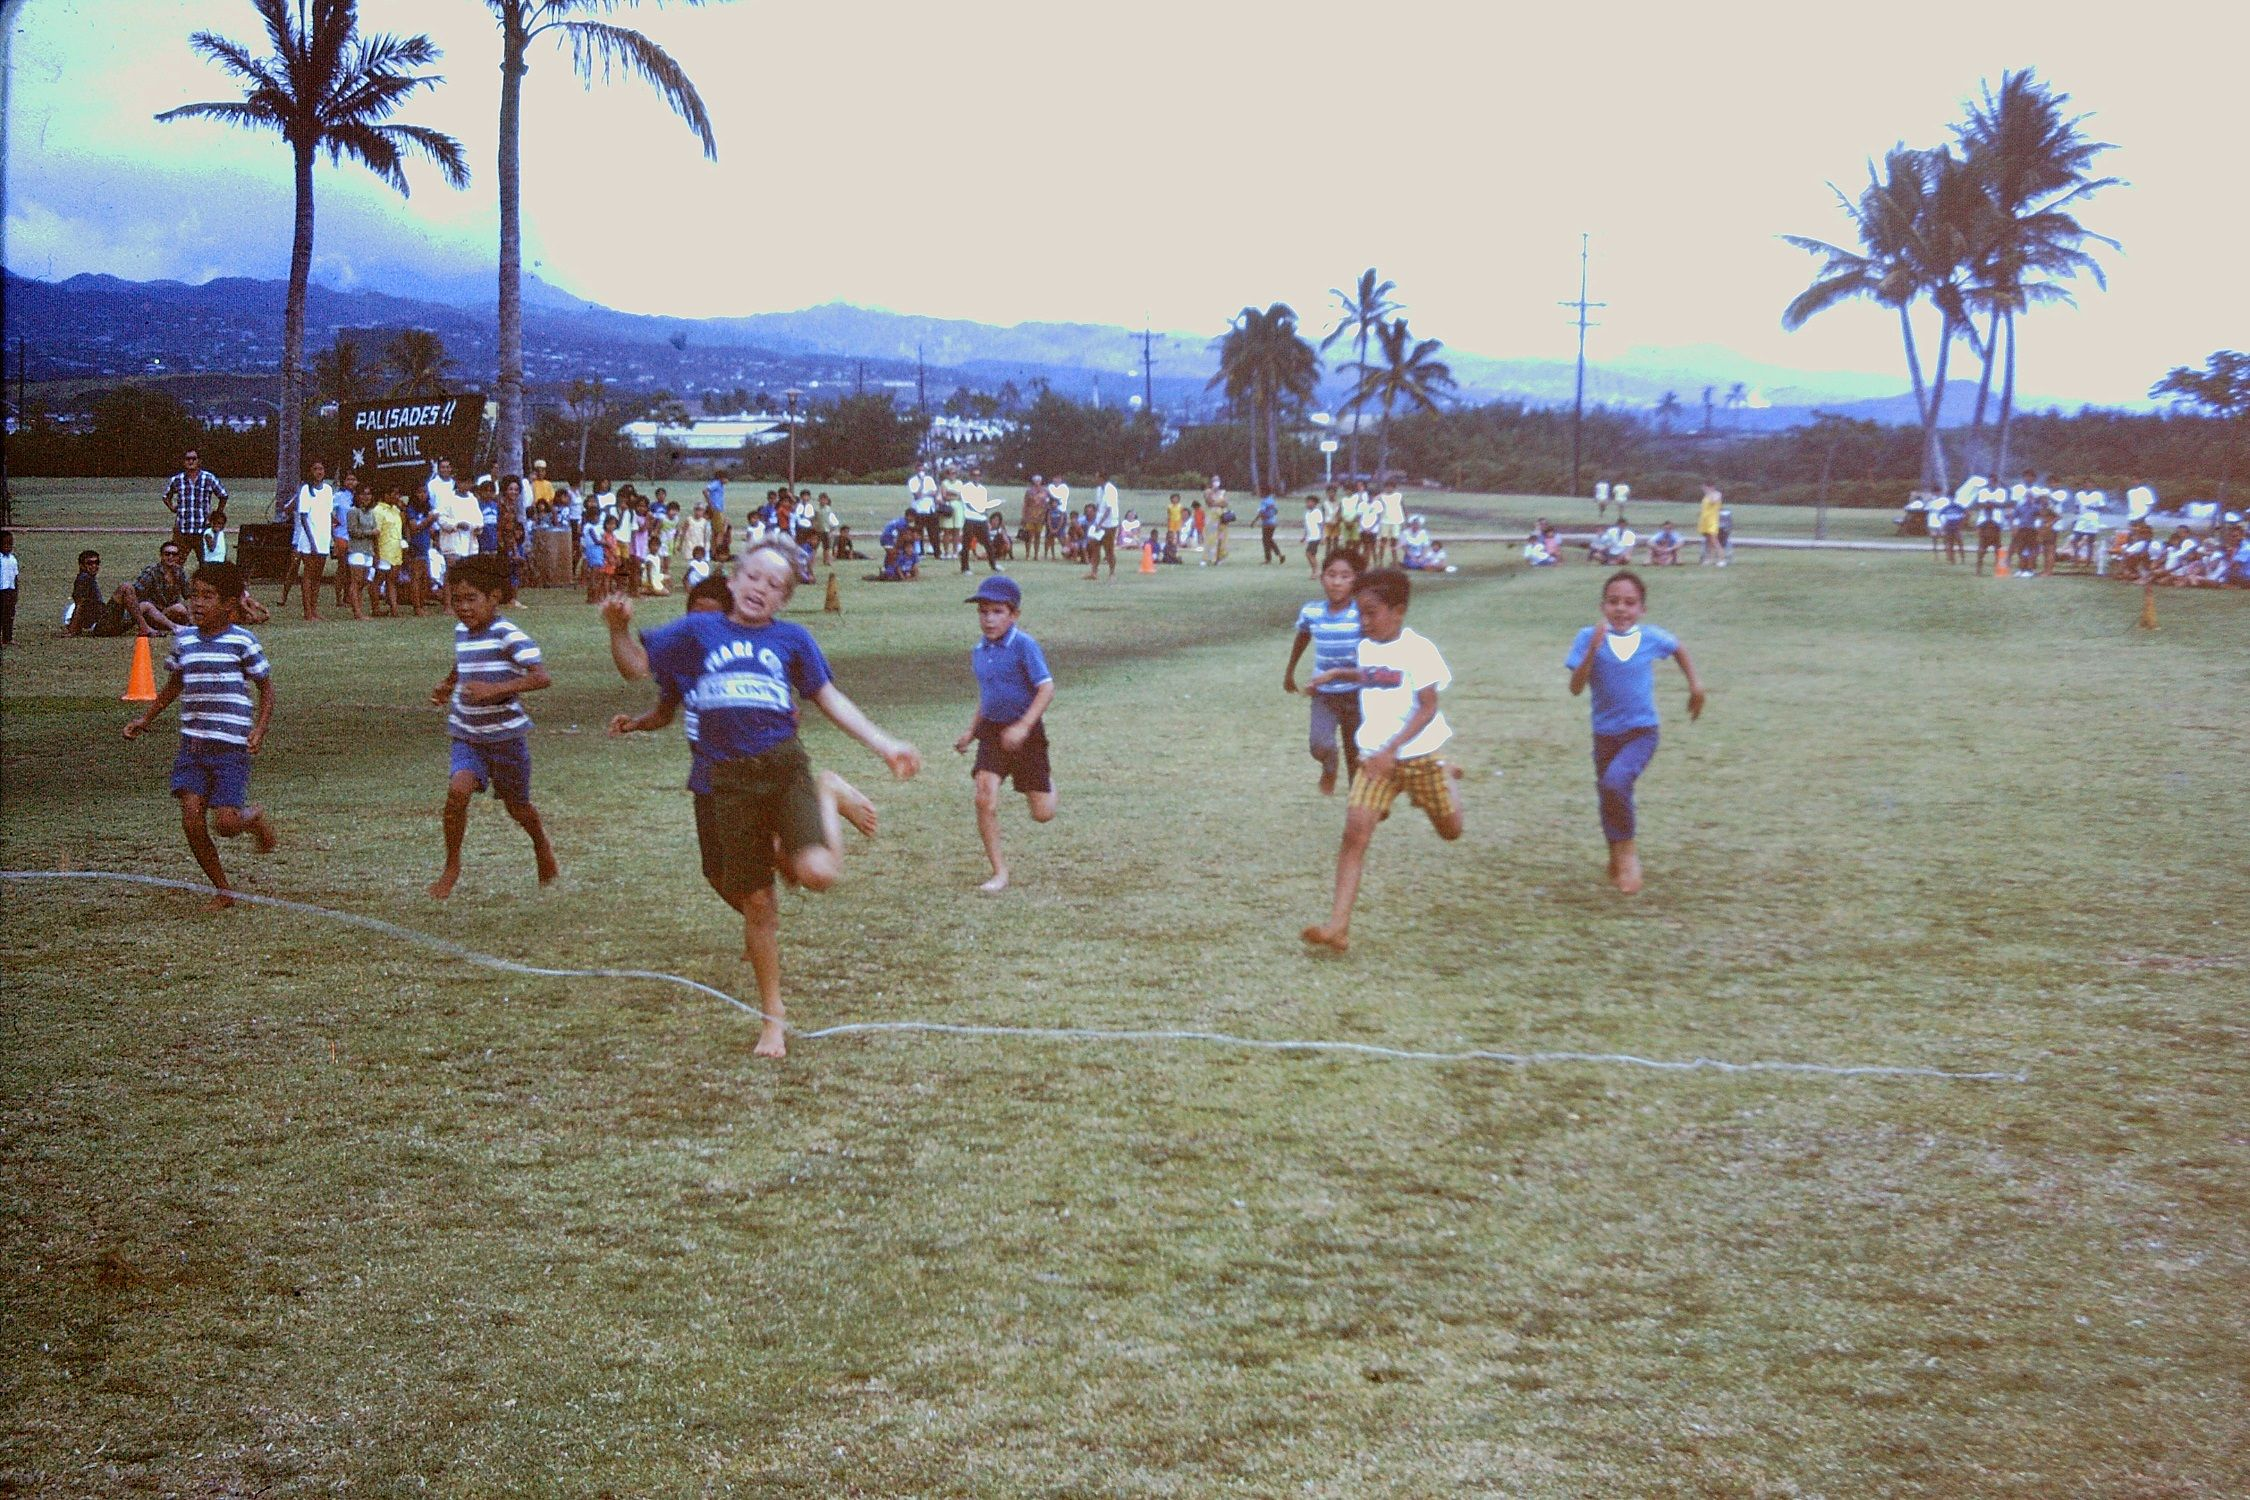 Back in 1969 summer several families from Palisades had this summer get together in Pearl Harbor Park (now Blaisdell). Here I am in a race. My friend Mark Hill won.